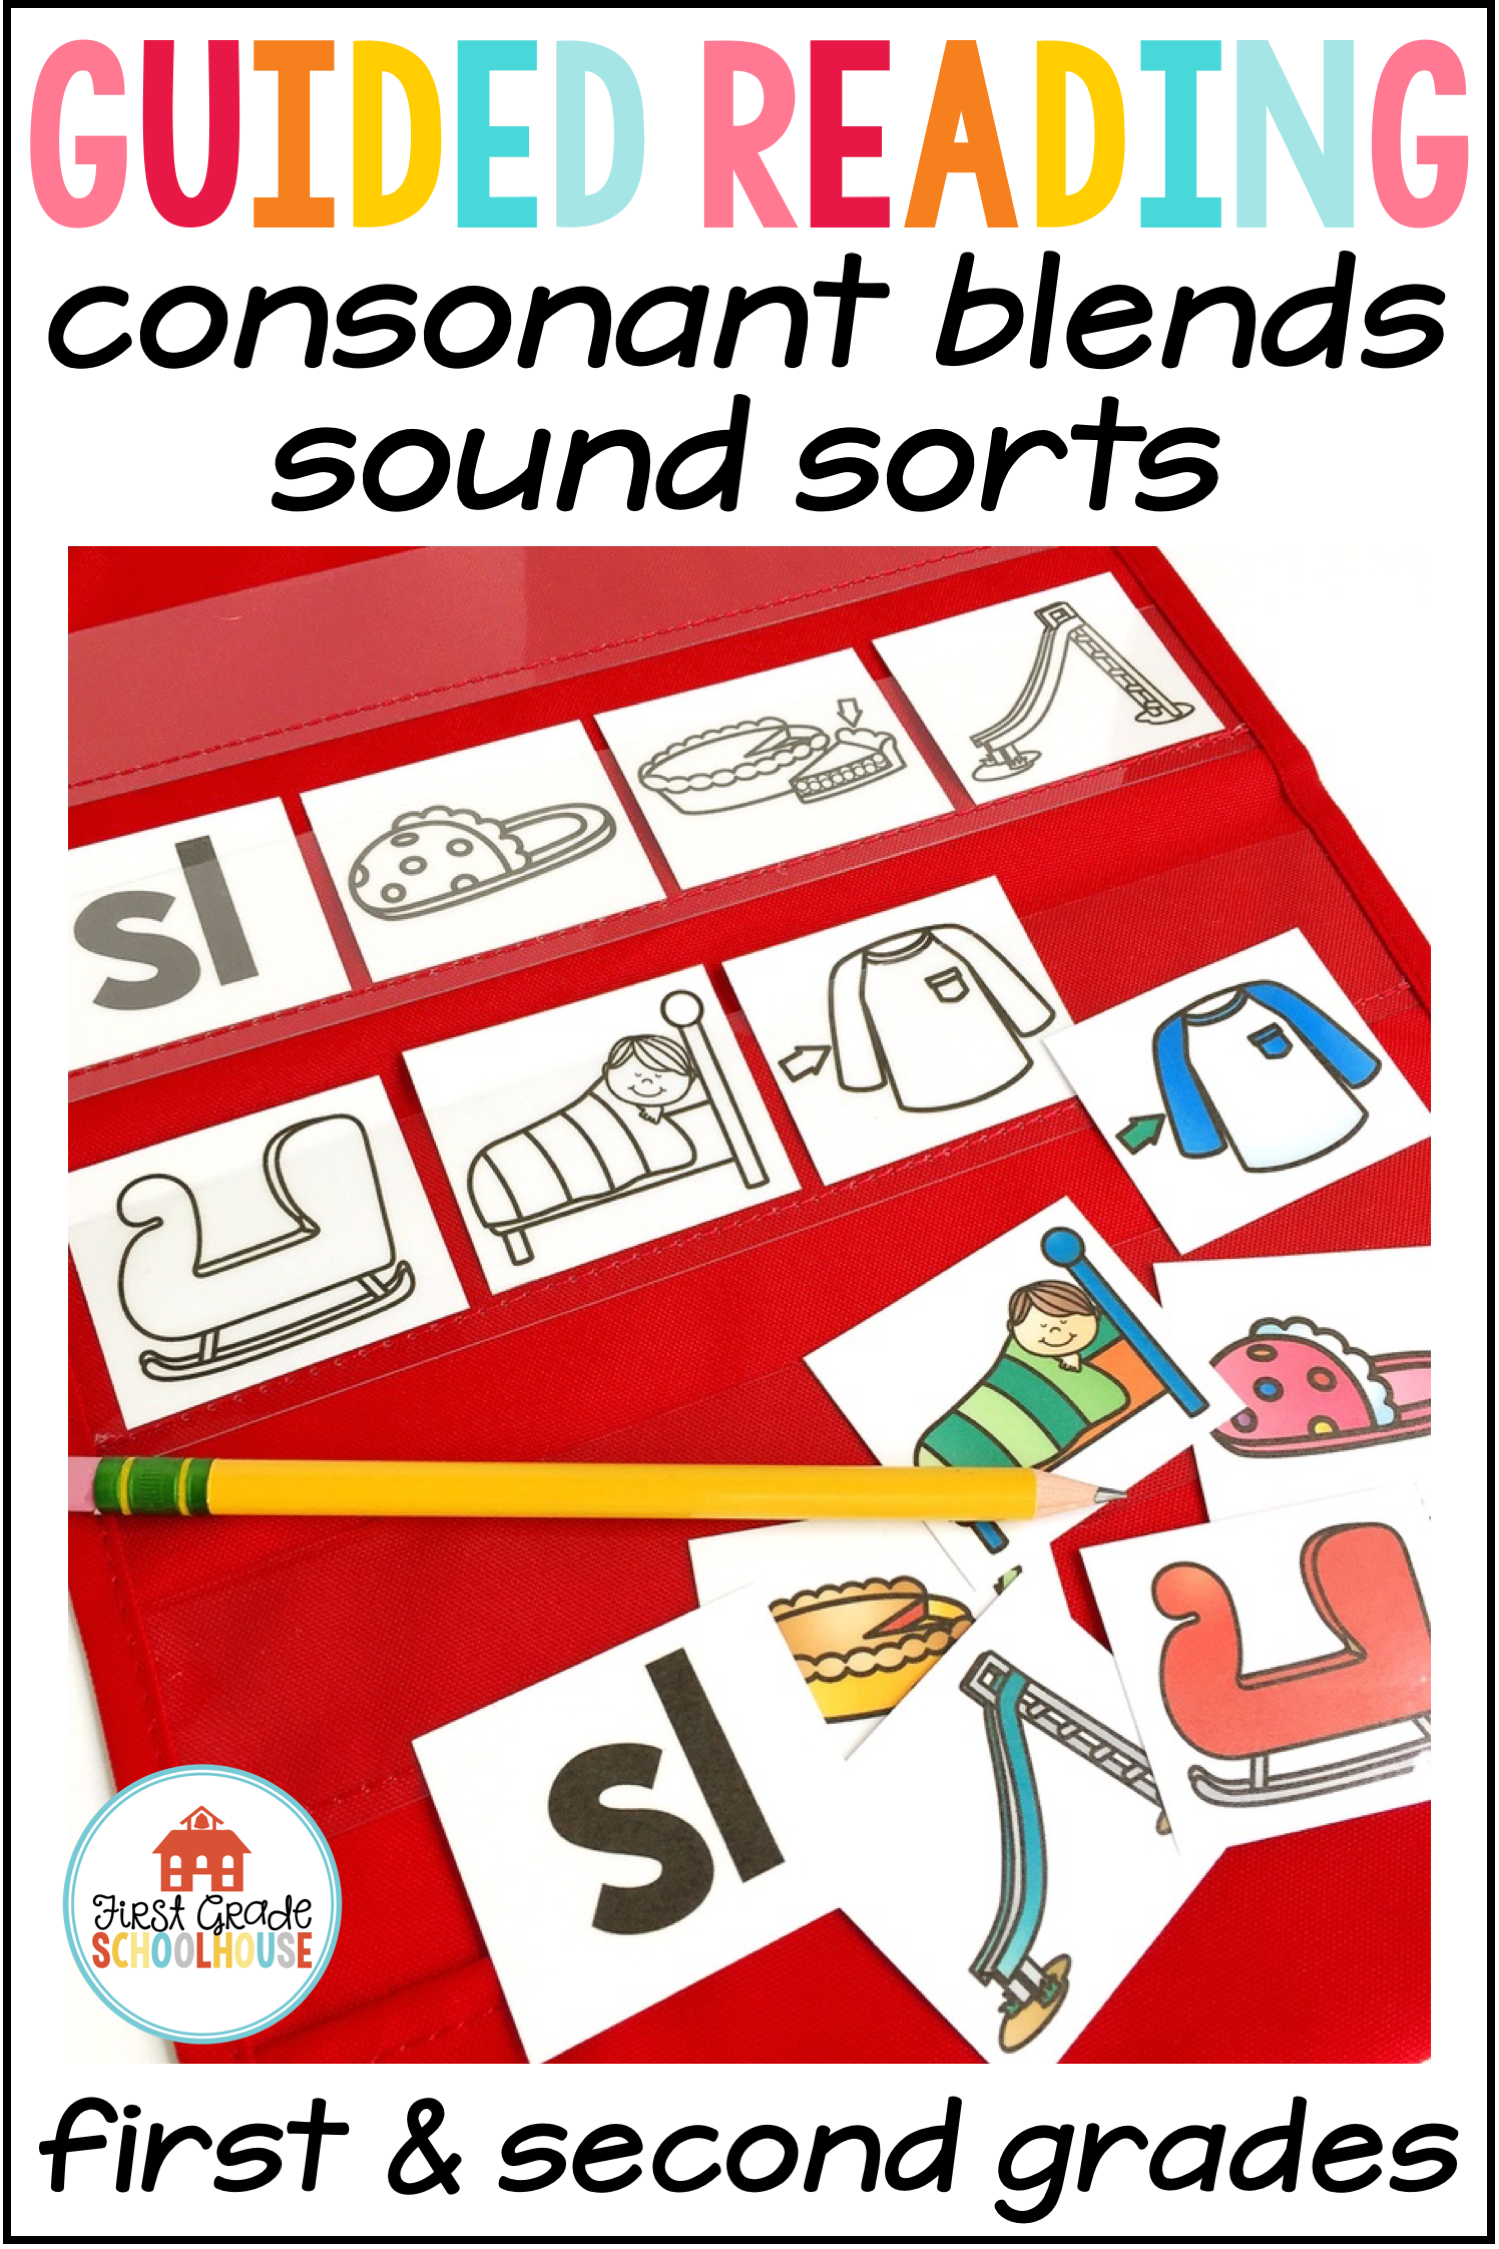 Guided Reading Sound Sorts Consonant Blends